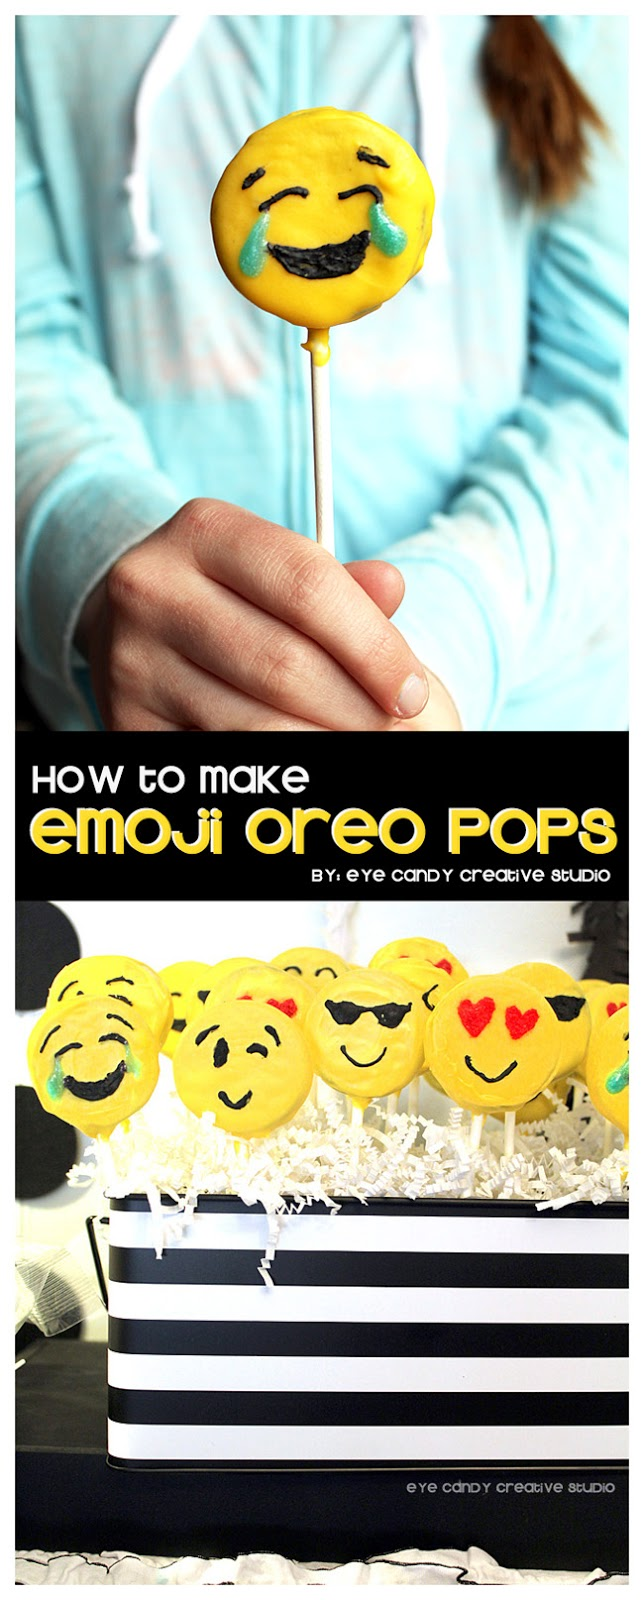 how to make emoji oreo pops, empji party food, emoji birthday party